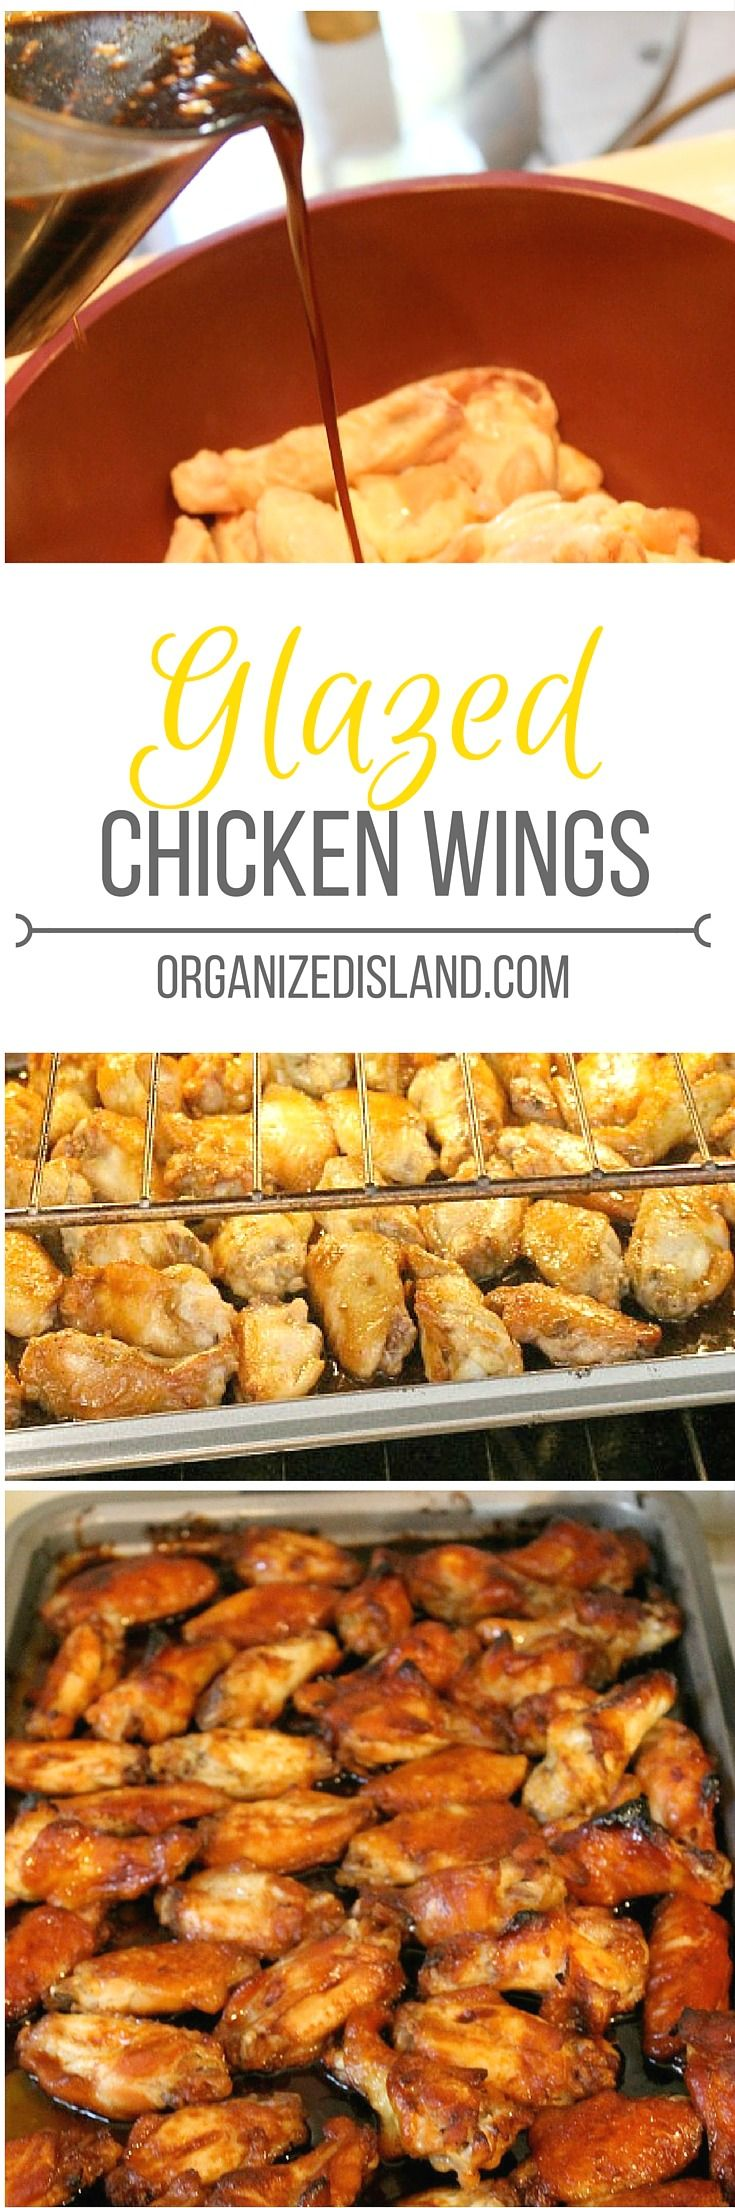 These tasty glazed chicken wings are perfect for an appetizer or football parties. These are not spicy but nicely flavored.